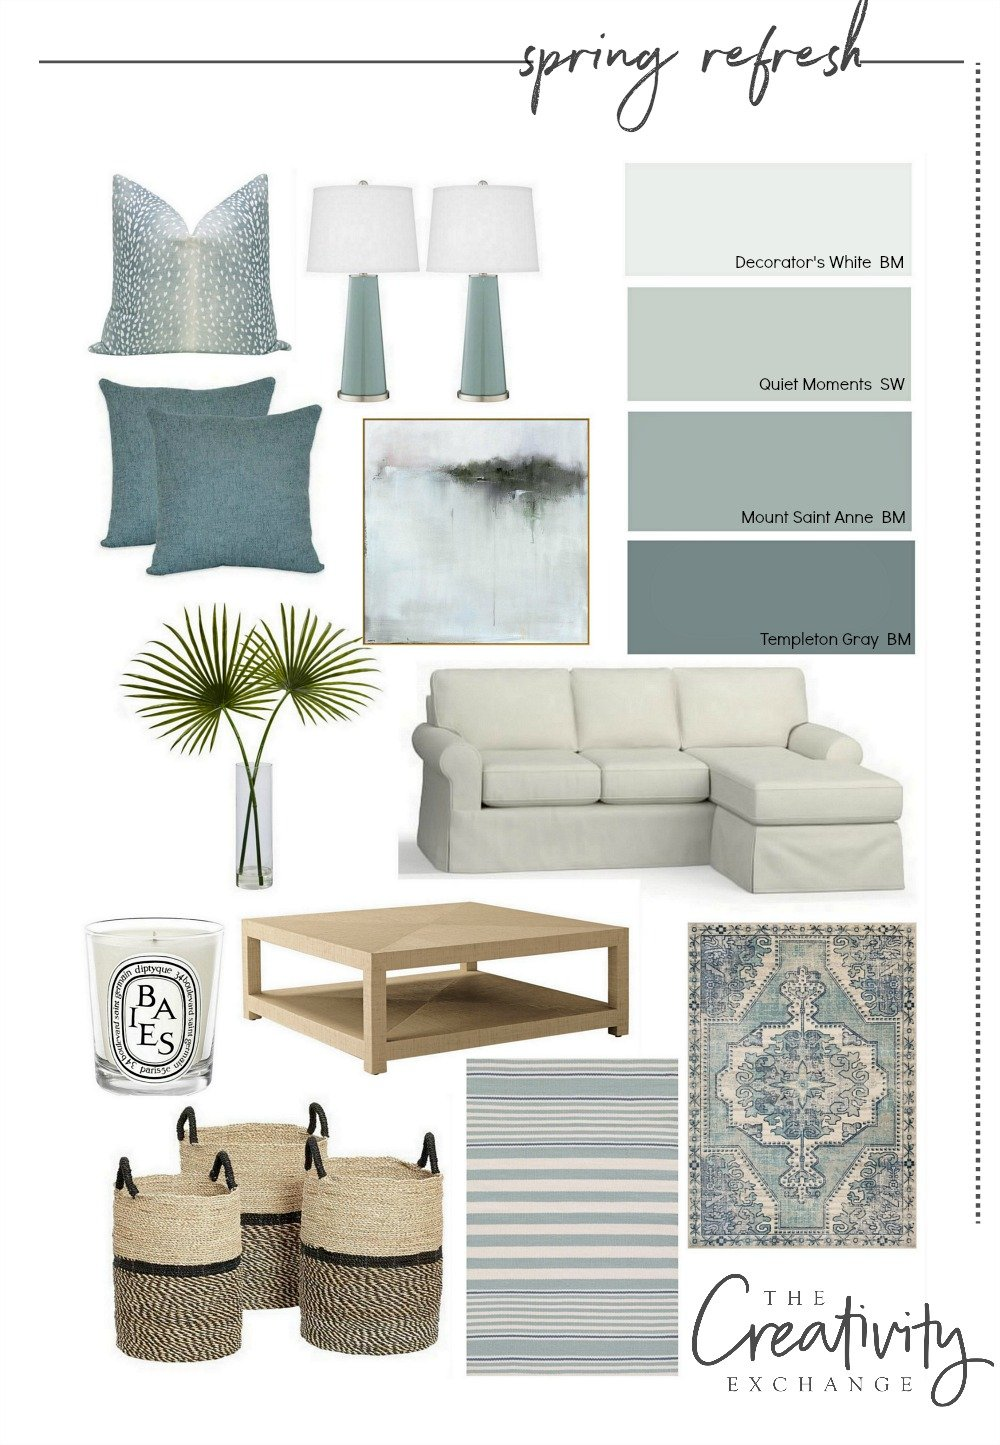 Spring refresh design mood board